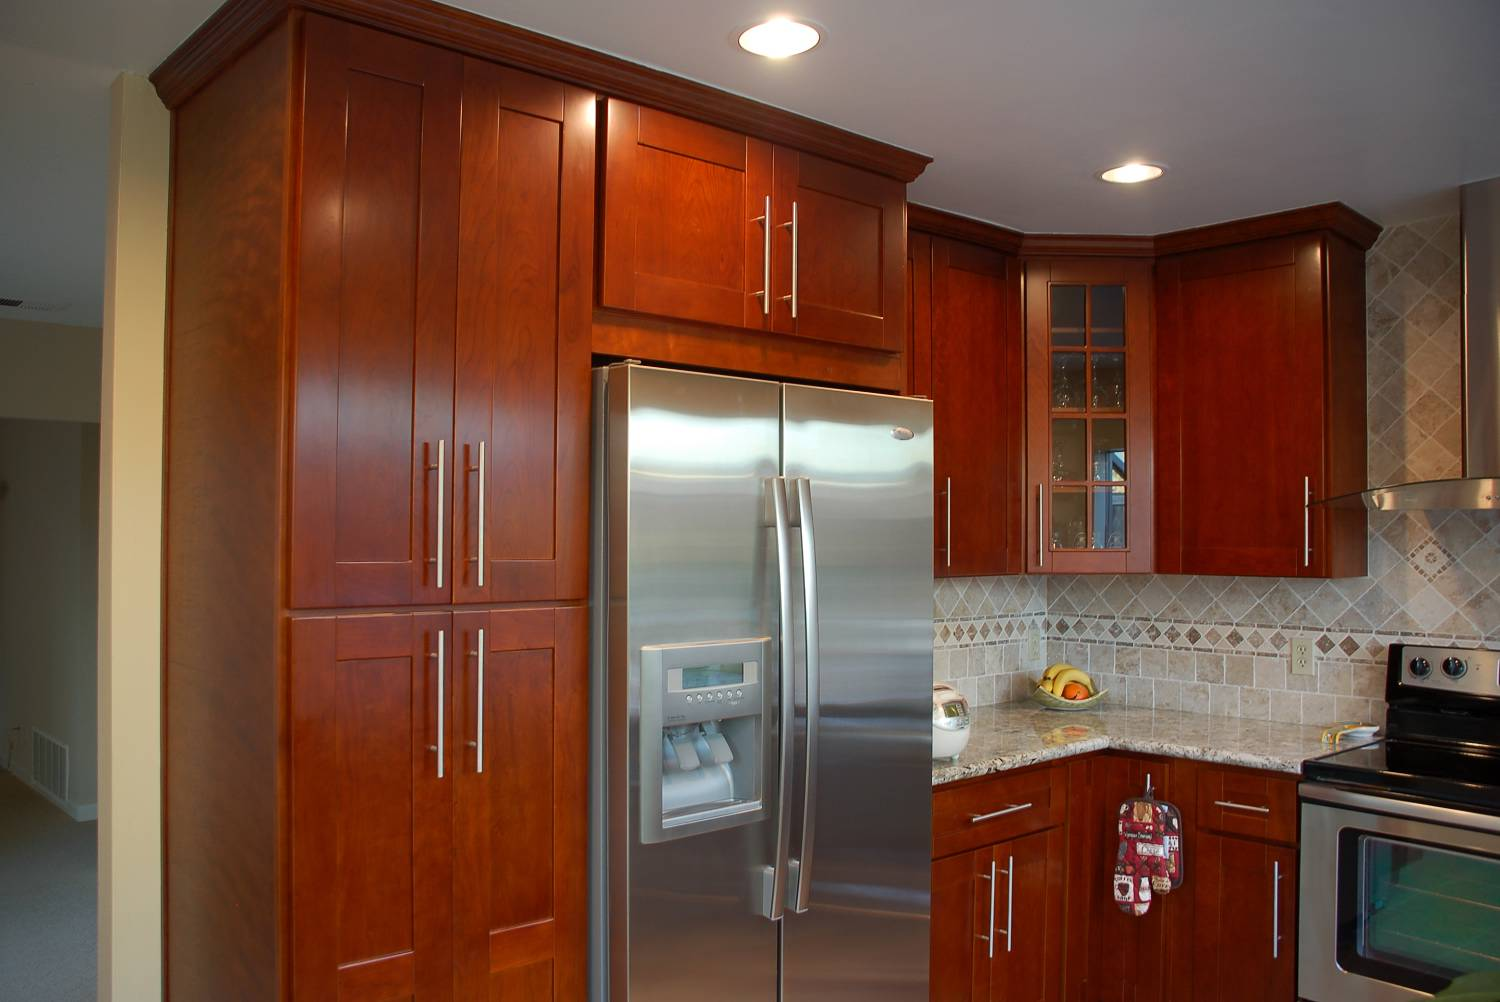 hong bo hardware supply walnut vanity cabinets dark cherry cabinets. Black Bedroom Furniture Sets. Home Design Ideas